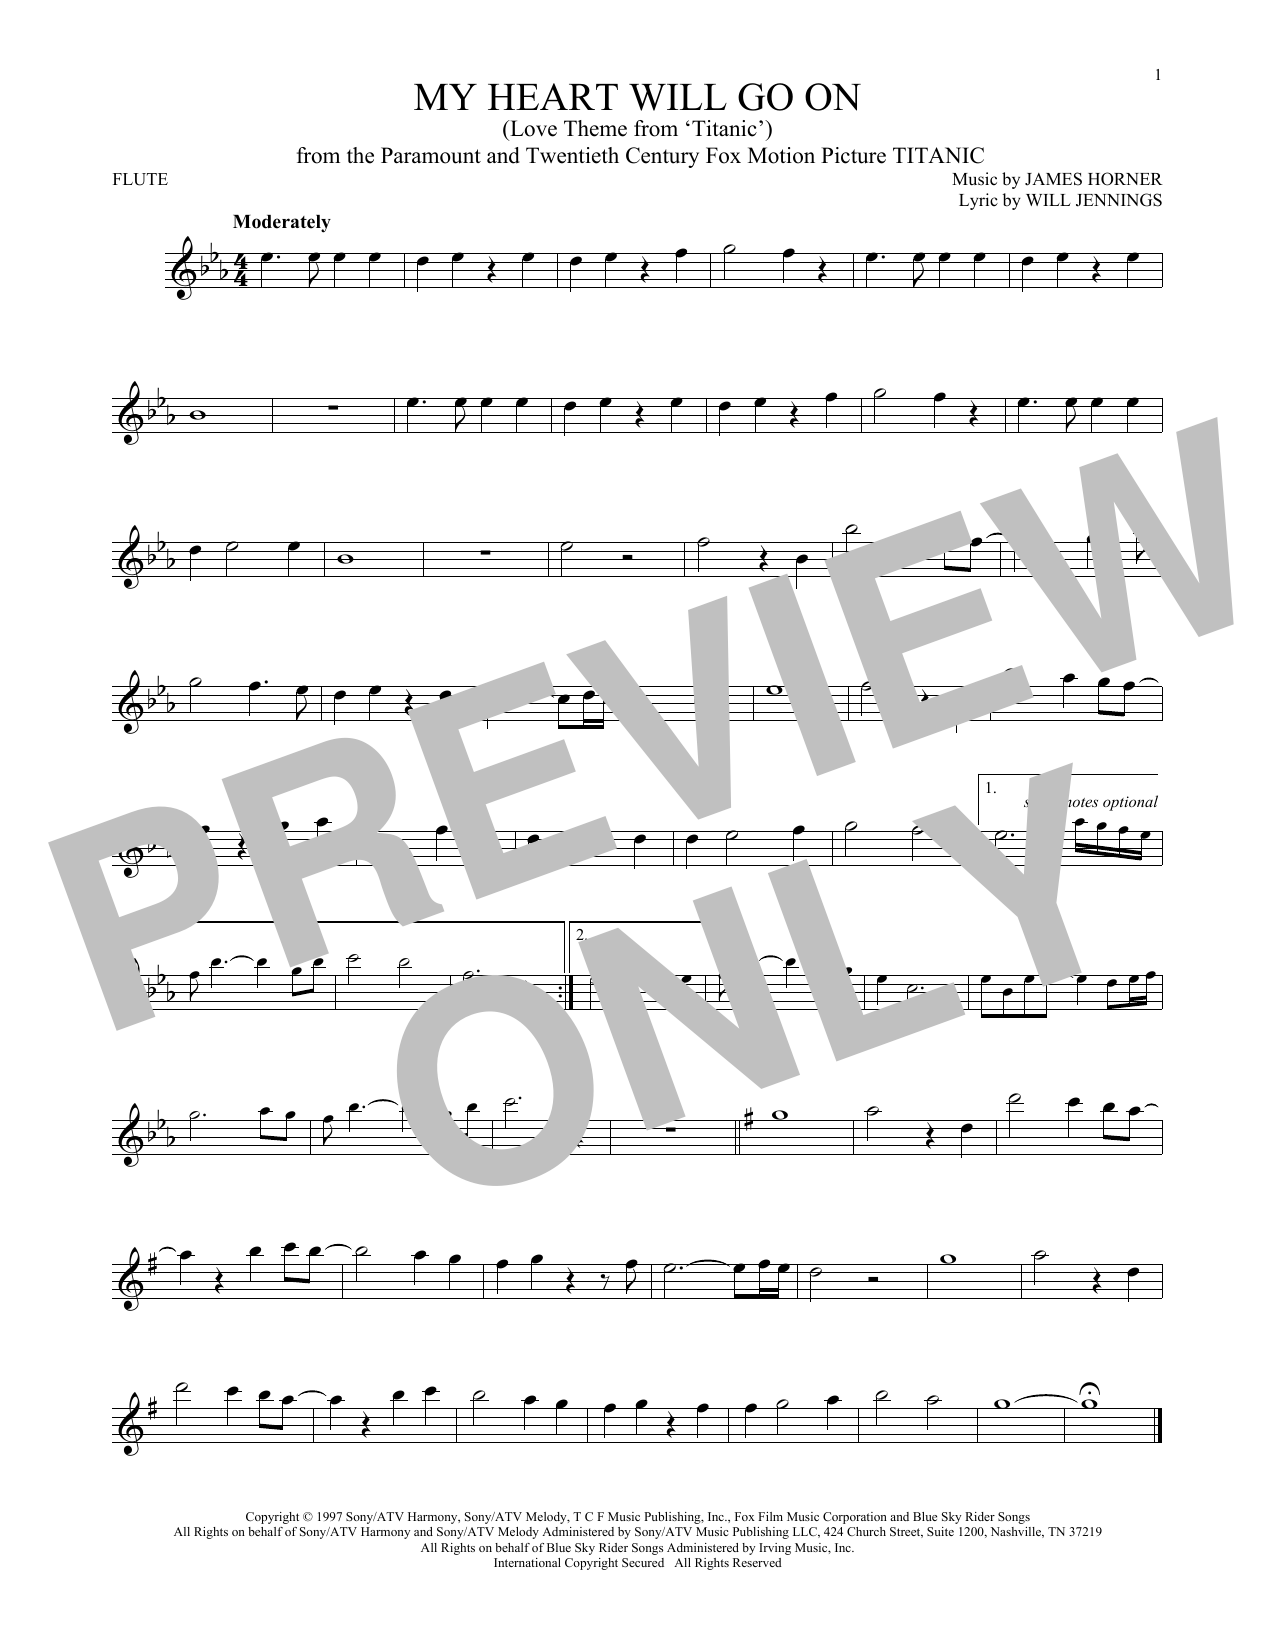 Celine Dion 'My Heart Will Go On (Love Theme From 'Titanic')' Sheet